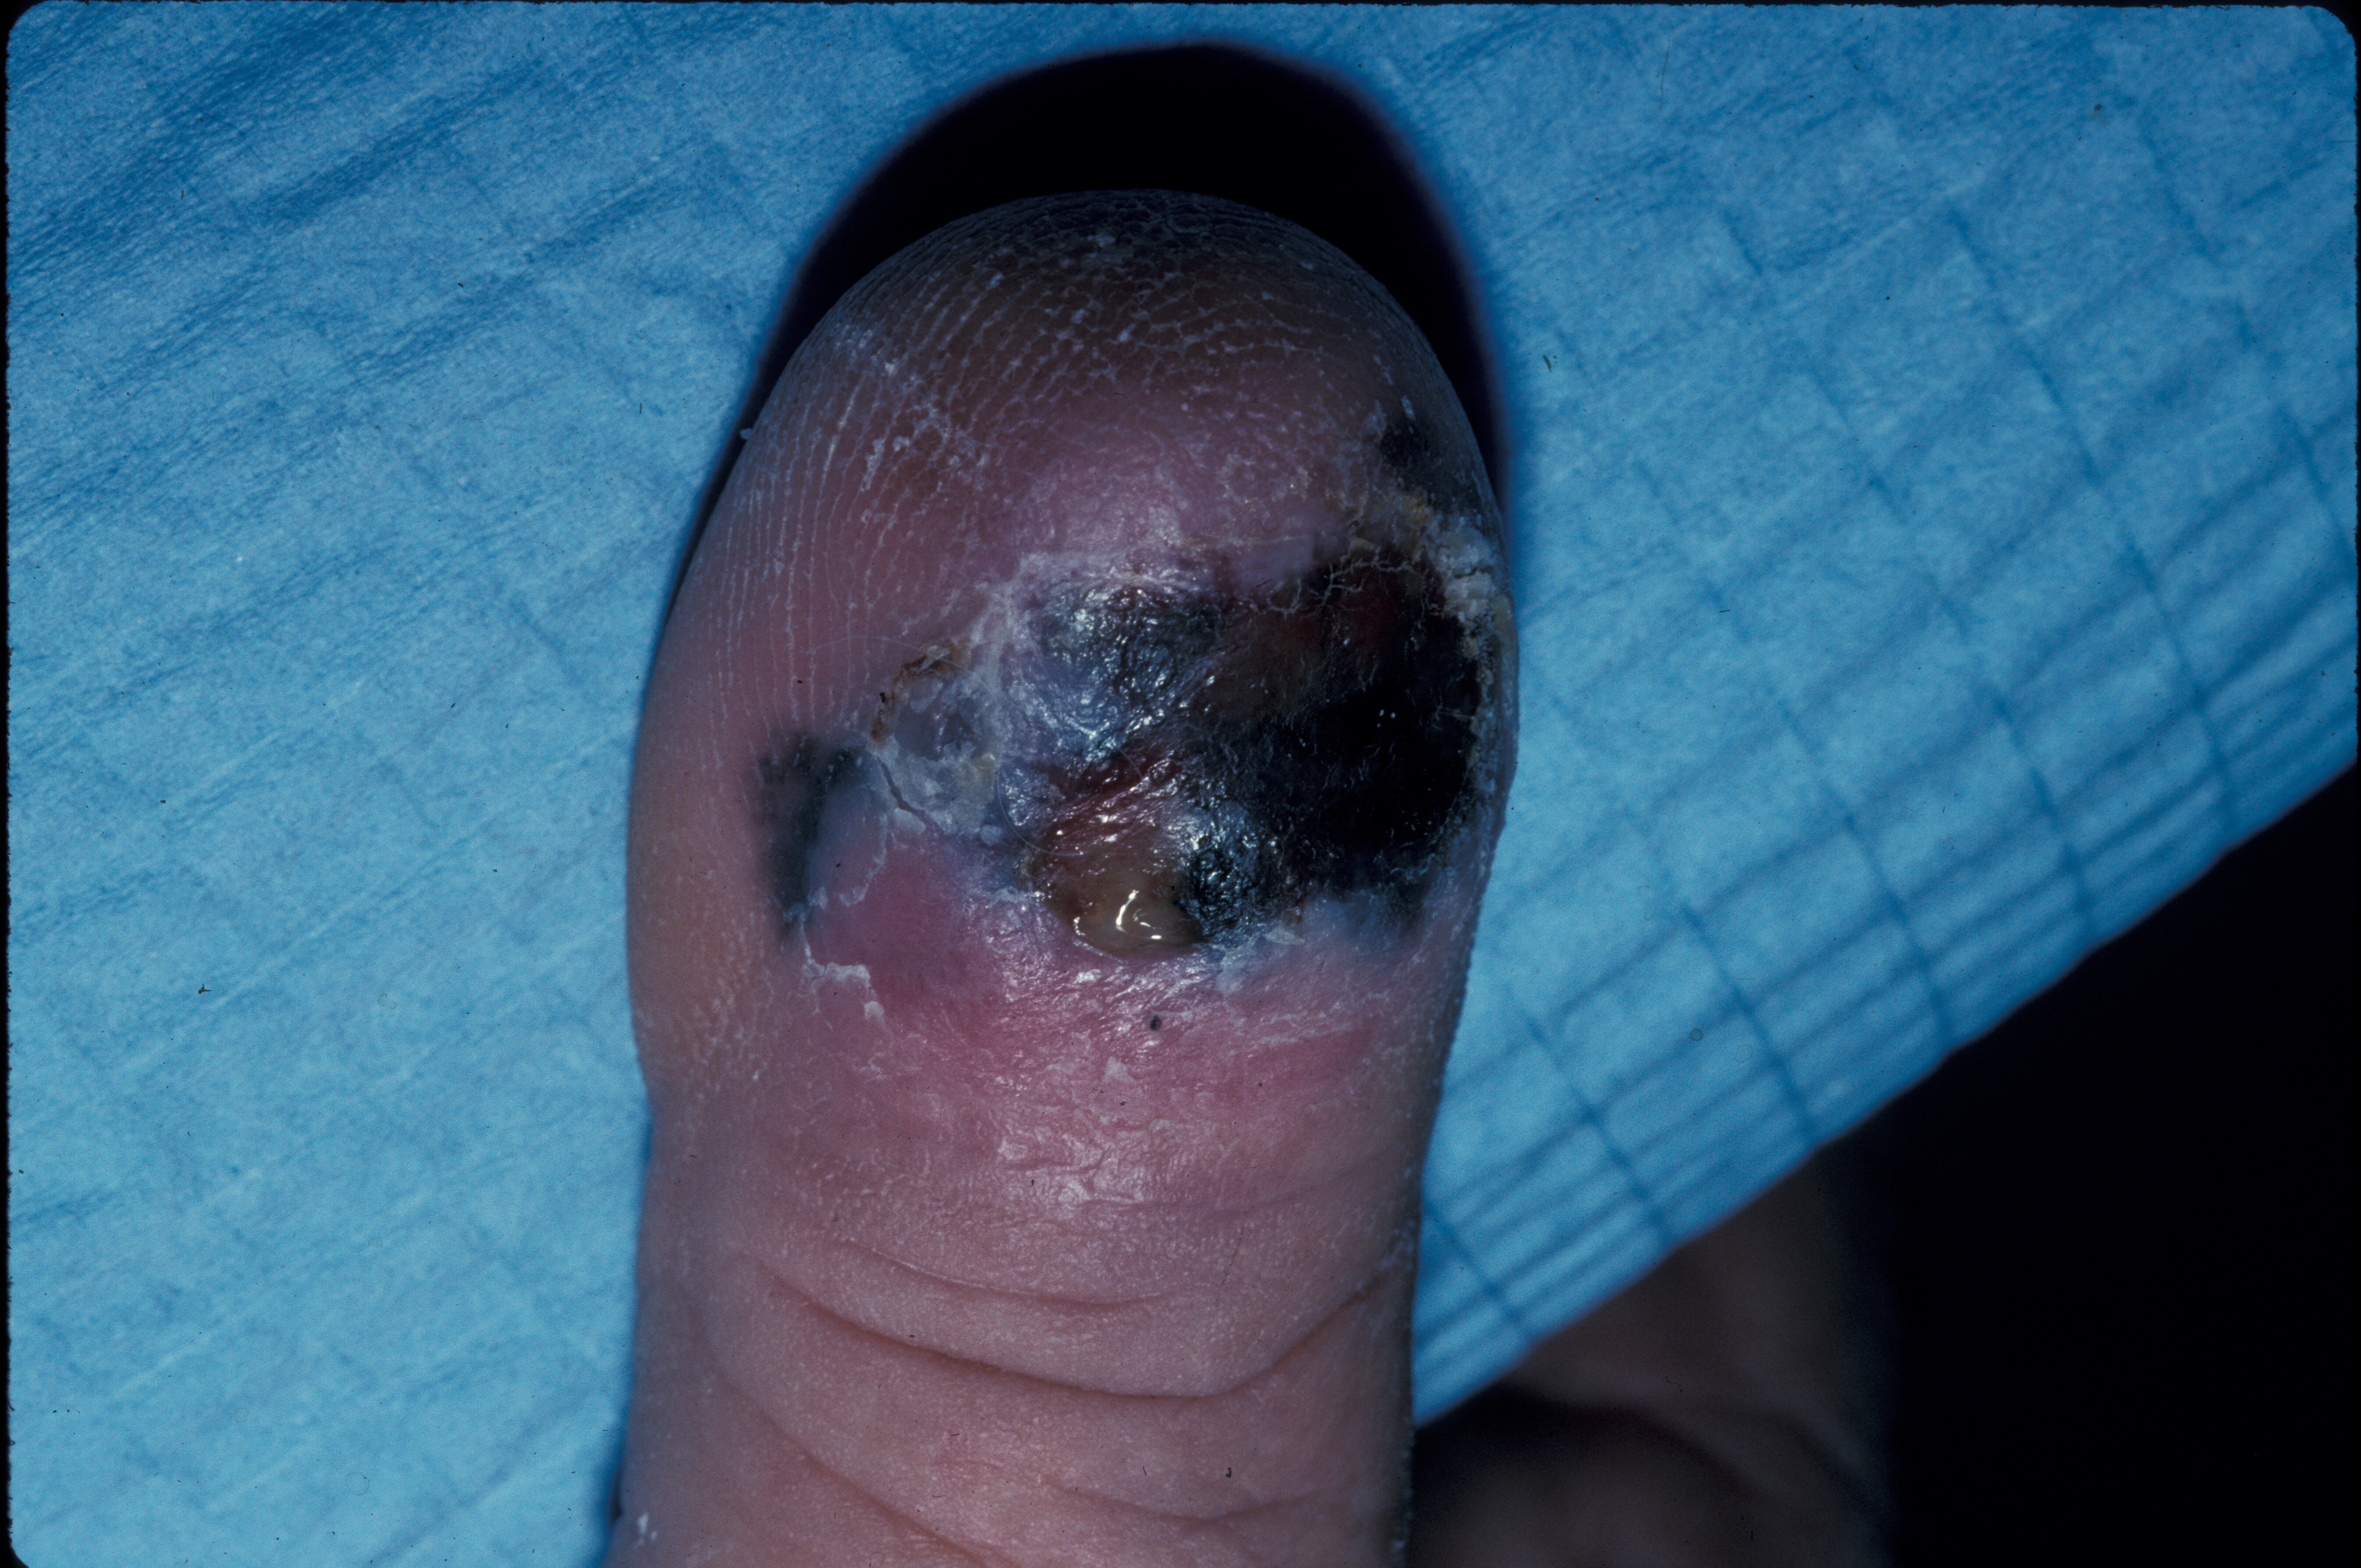 Clinical photo of an ulcerated acral lentiginous melanoma on the dorsal aspect of a toe.